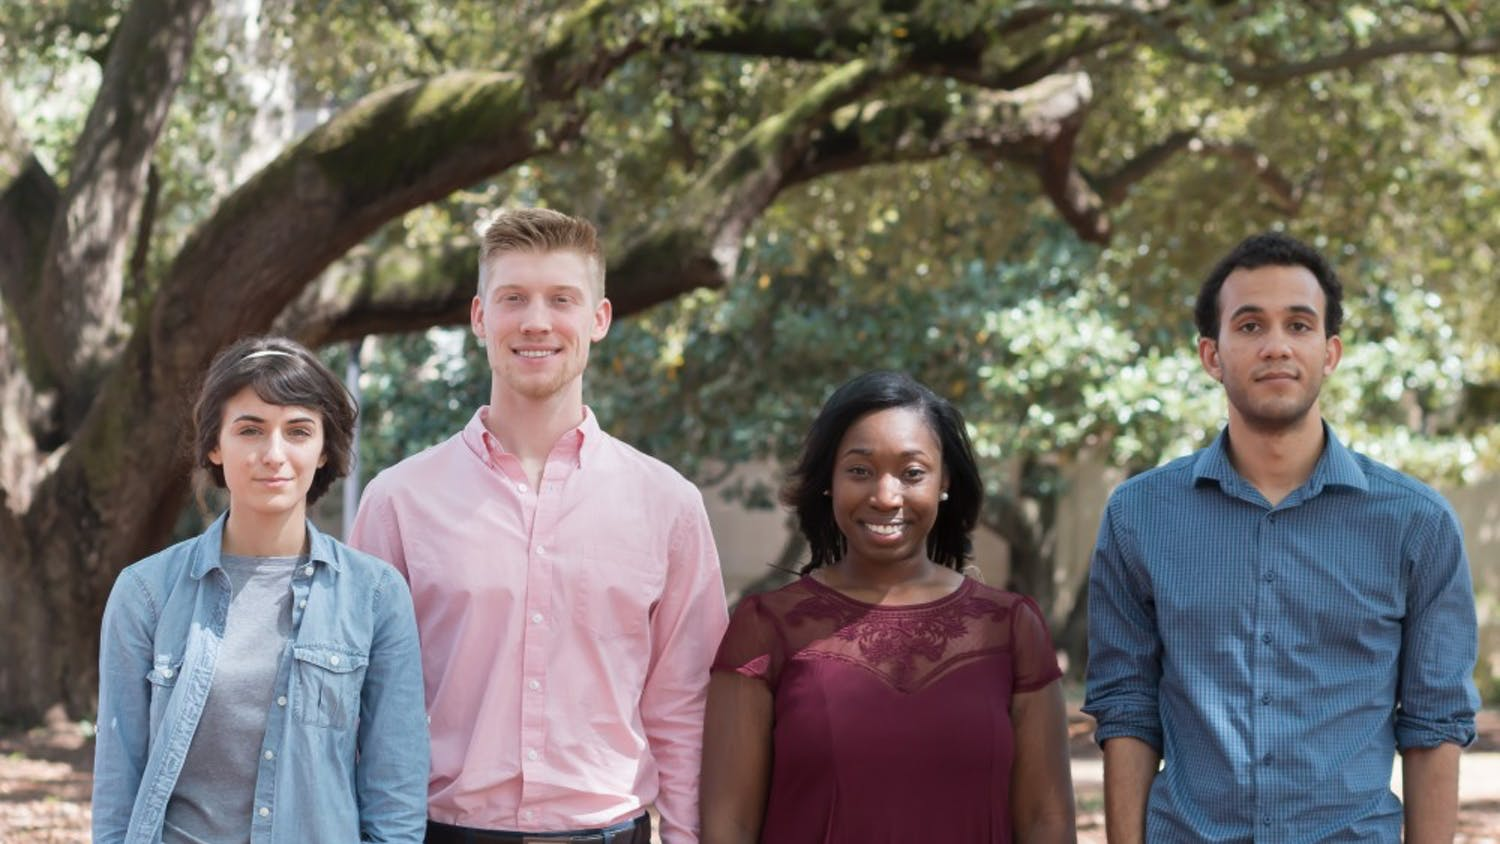 From right to left, NSF Graduate Research FellowsDylan Madisetti, De'Aira Bryant and Brock Fletcher, and honorable mention Alicia LaMarche.